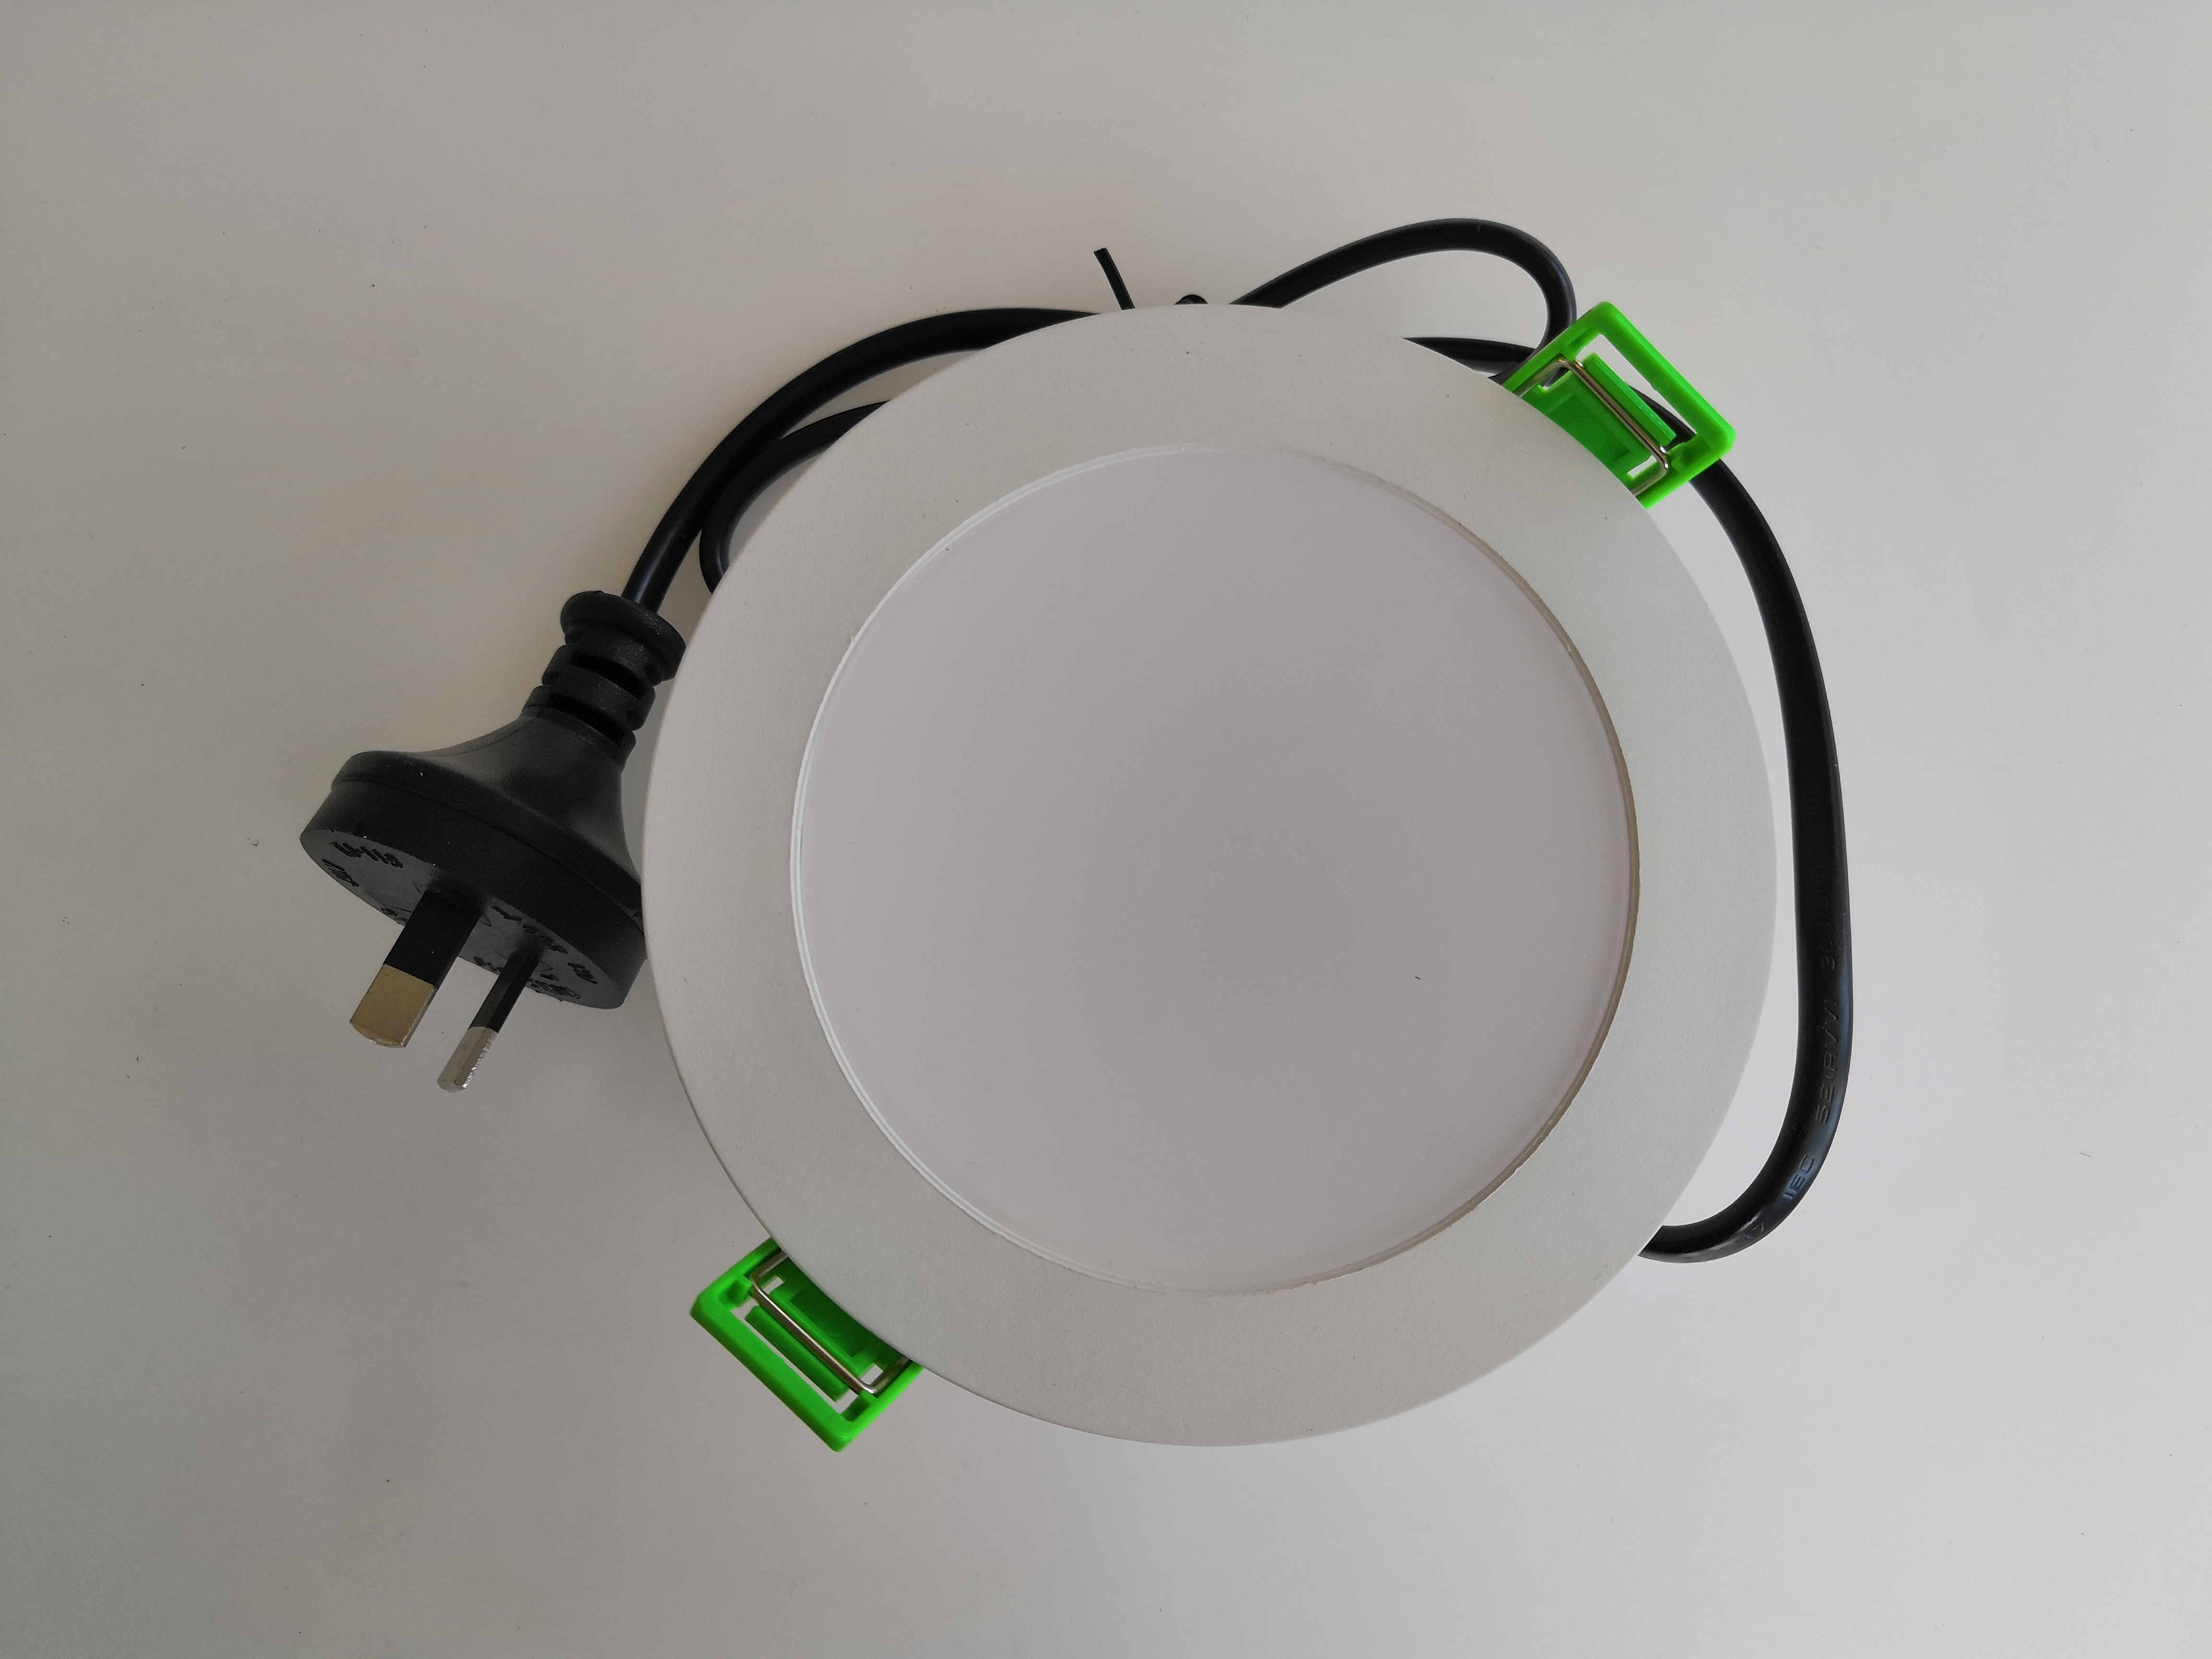 best service 8e896 d7a63 3A-DL1197 10w Dimmable Downlight [Code 4037]